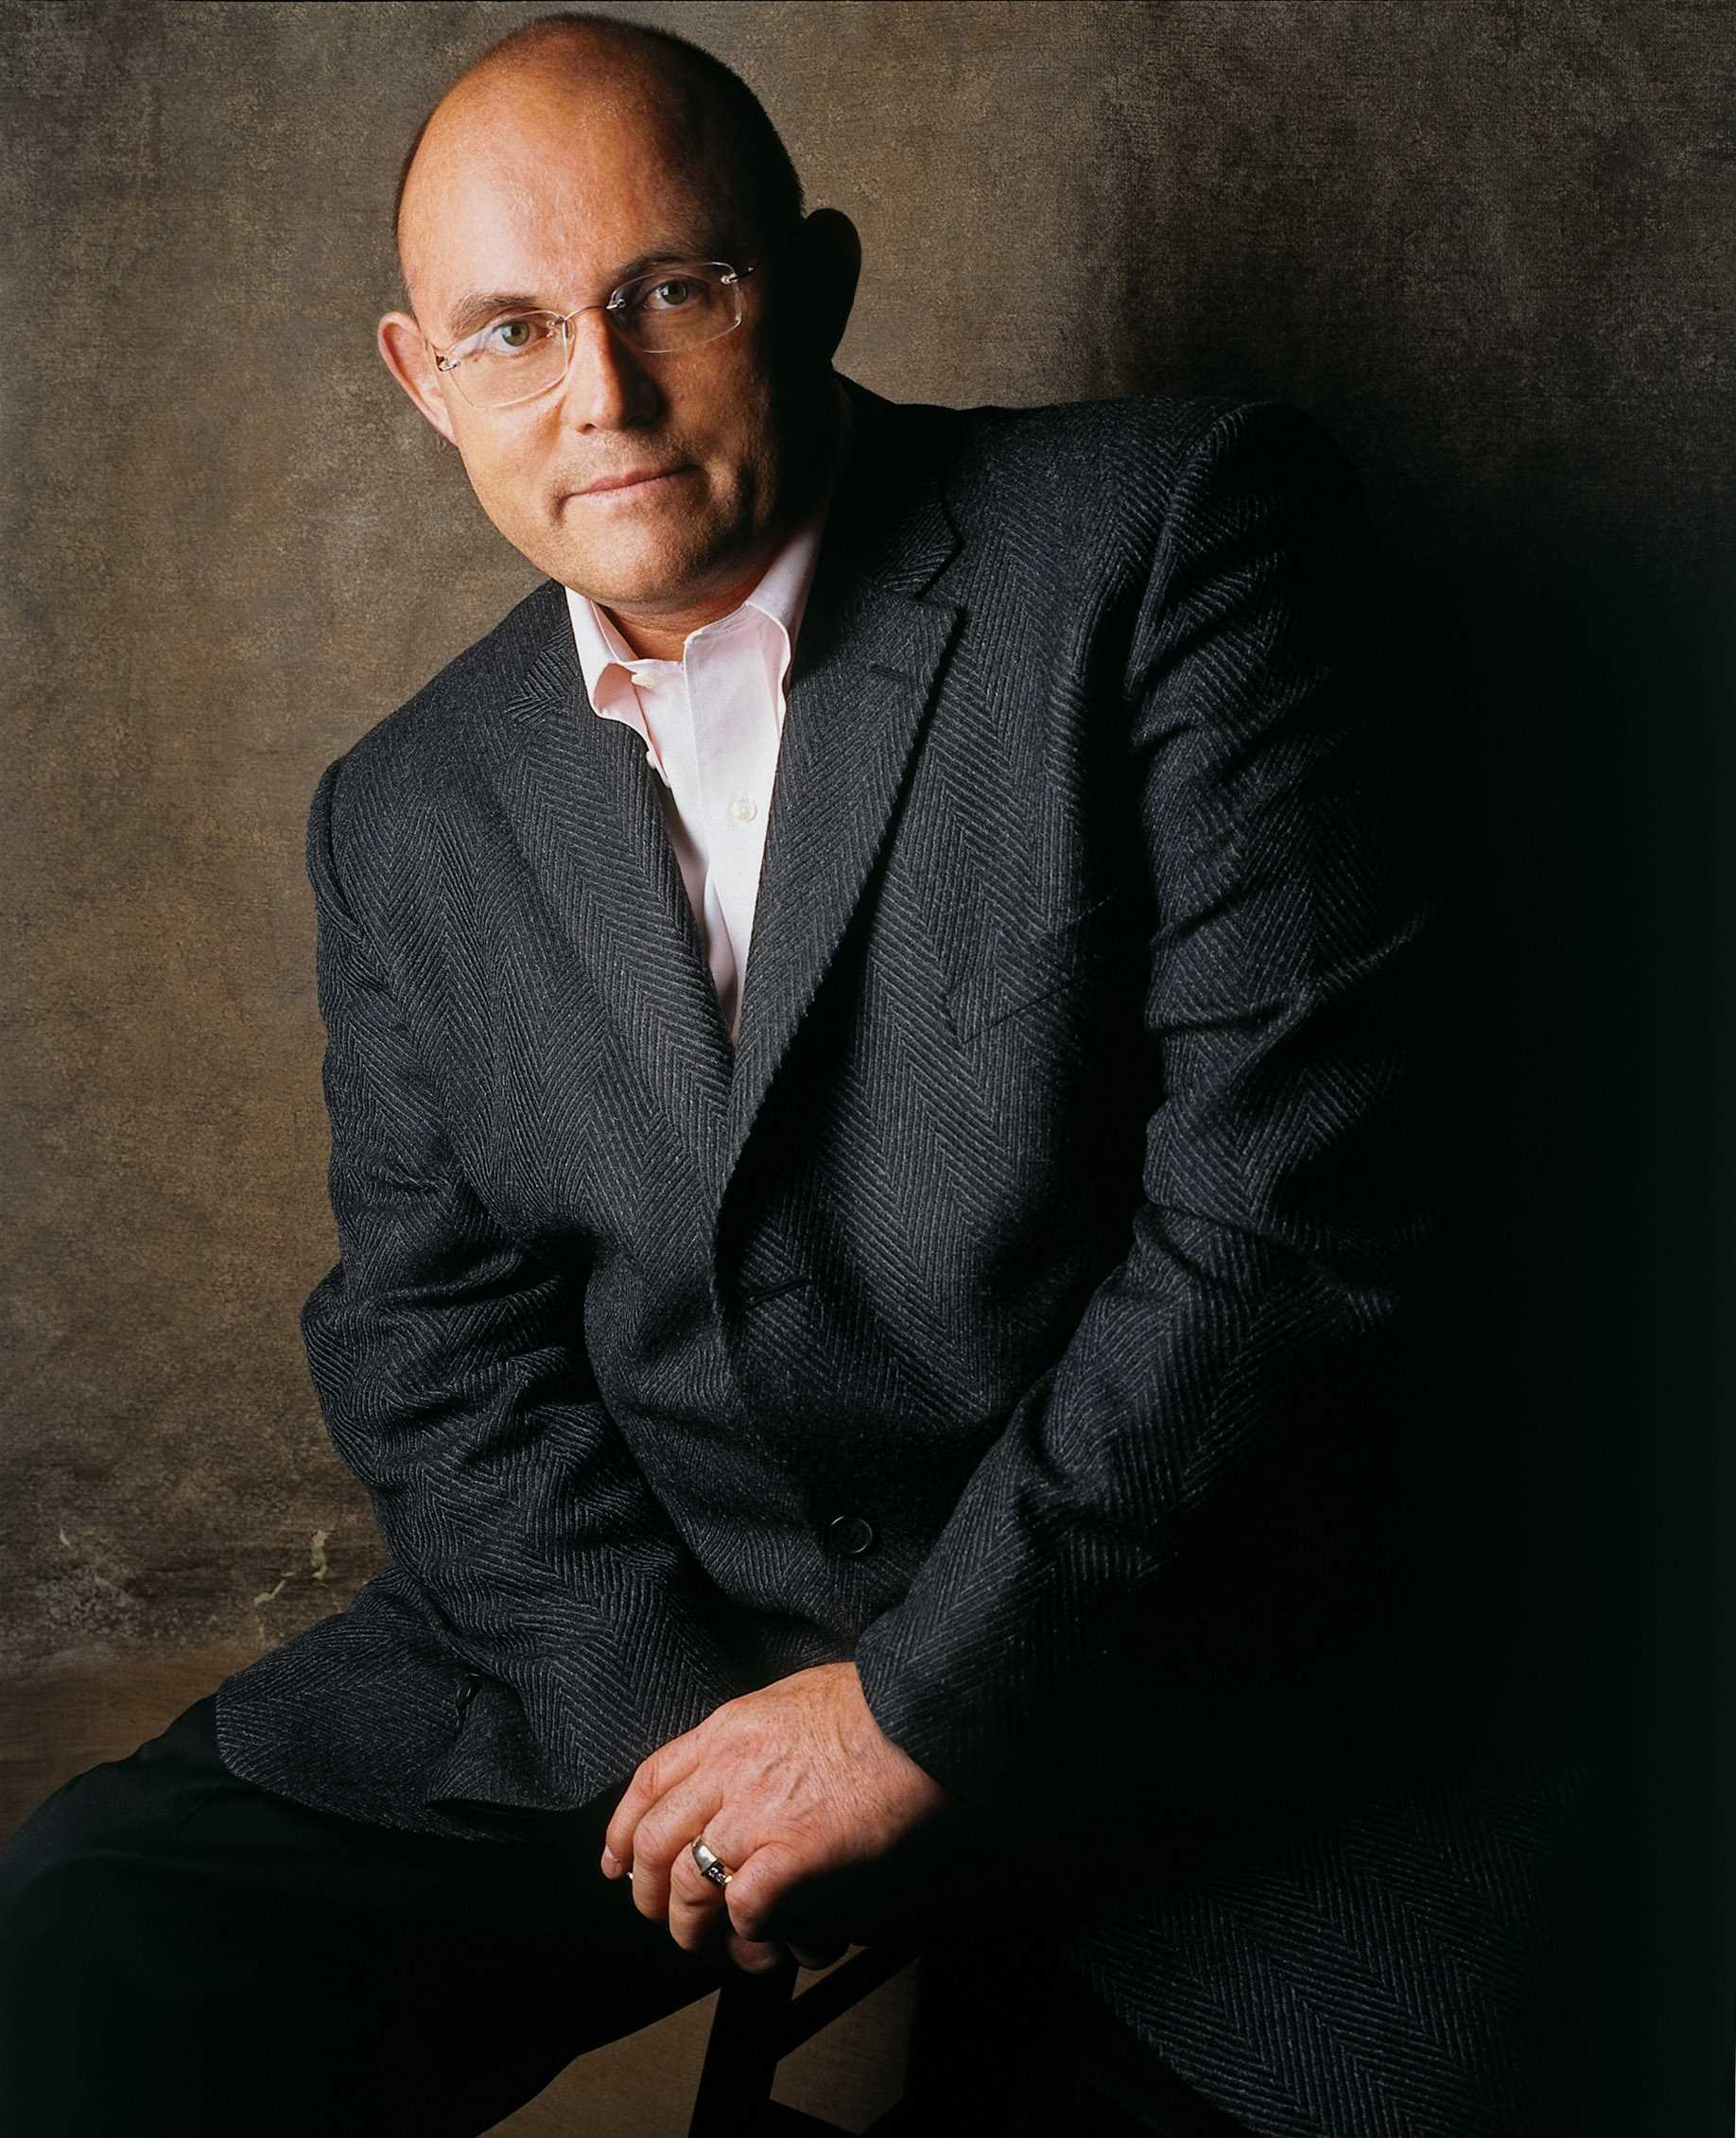 Irish Tenors' Ronan Tynan's tour takes him to Munster